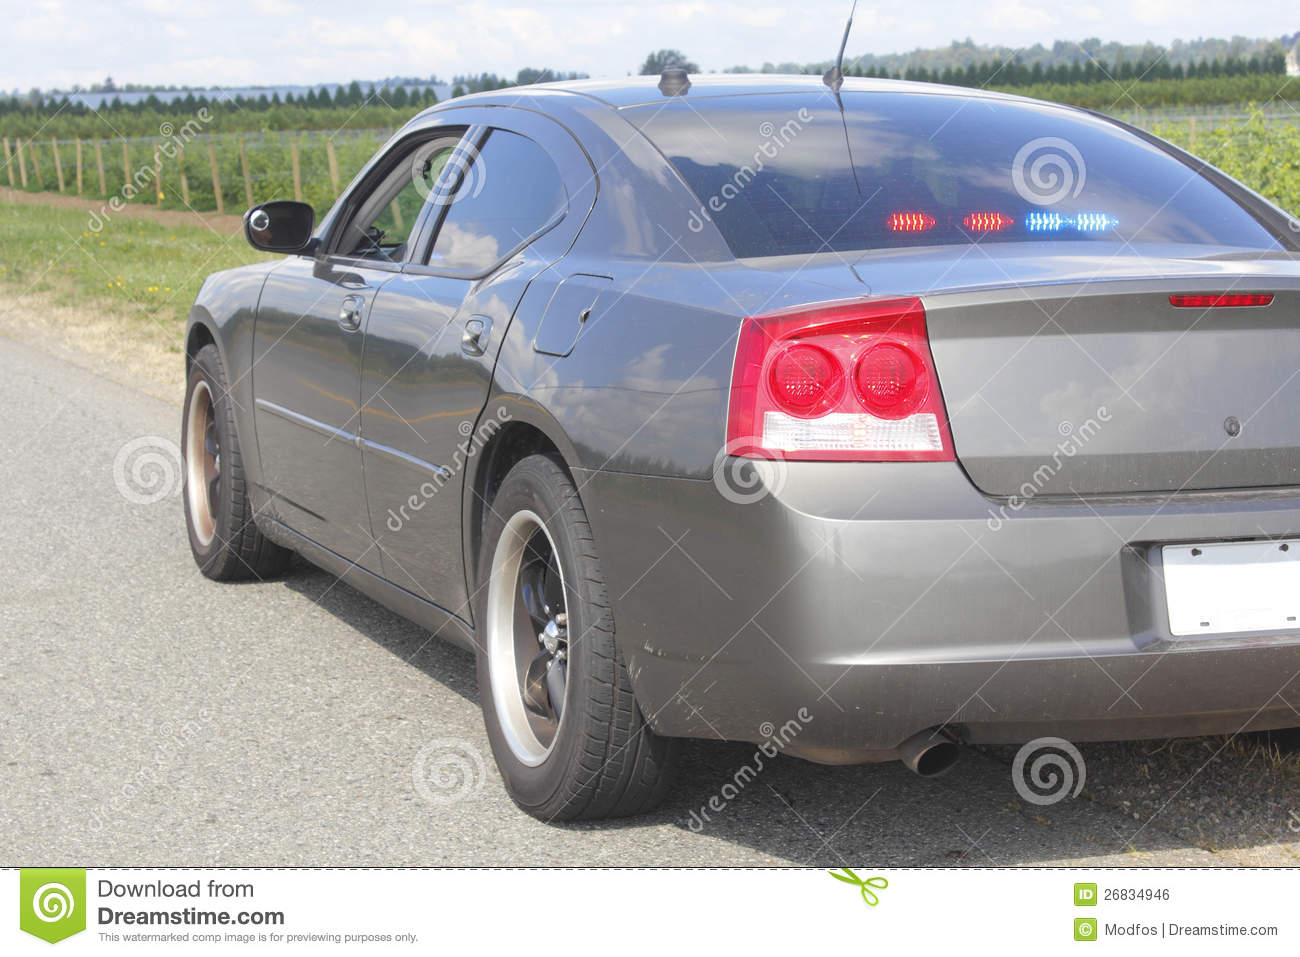 Unmarked police car gta 5 - Royalty Free Stock Photo Download Unmarked Police Car